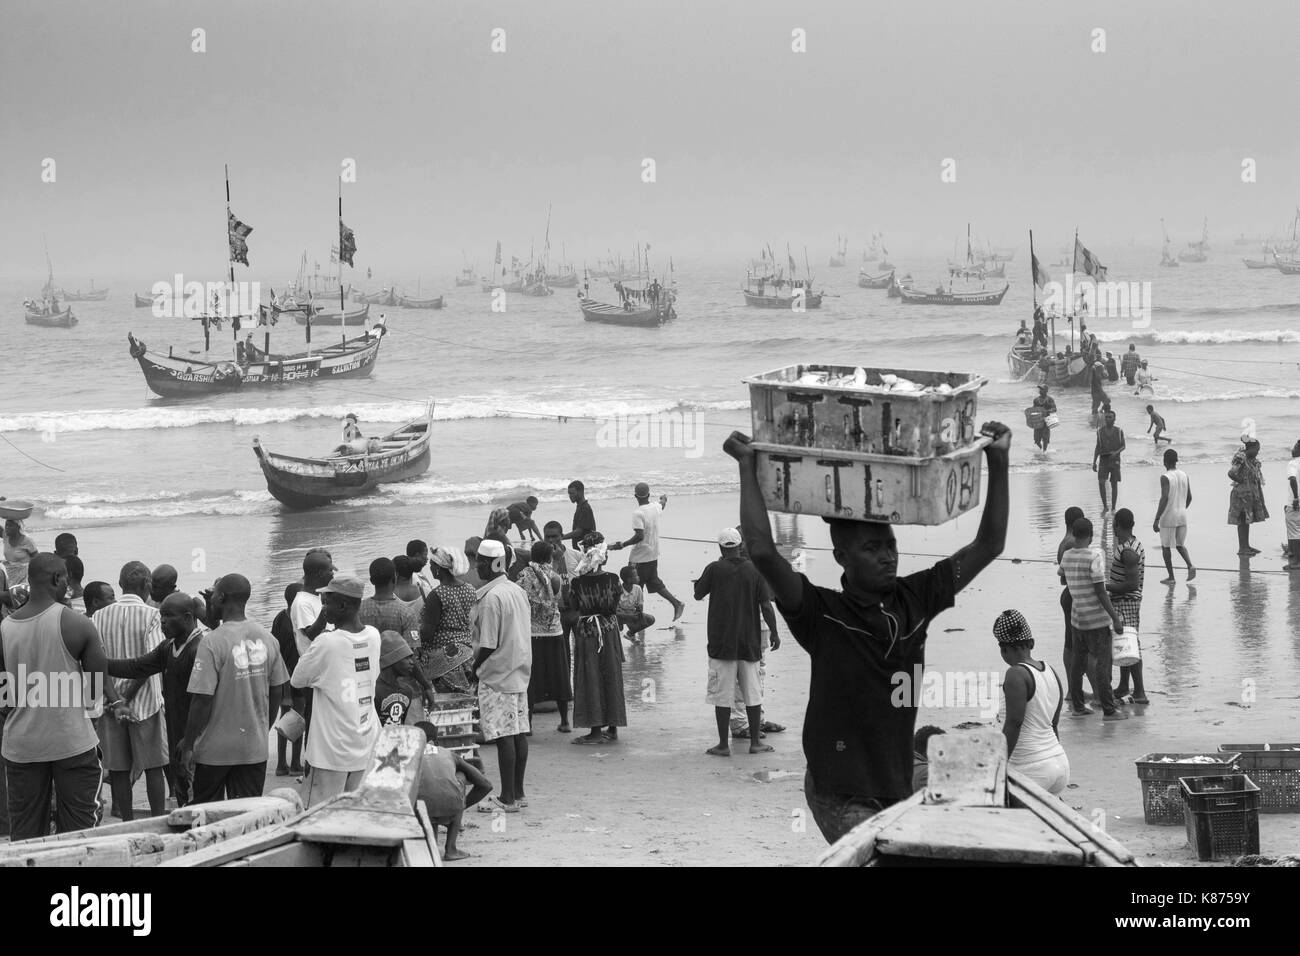 Ghana, Accra - December 28, 2016: Fishermen return with shore ships after the morning fishing in jamestown port in Accra, Ghana - Stock Image